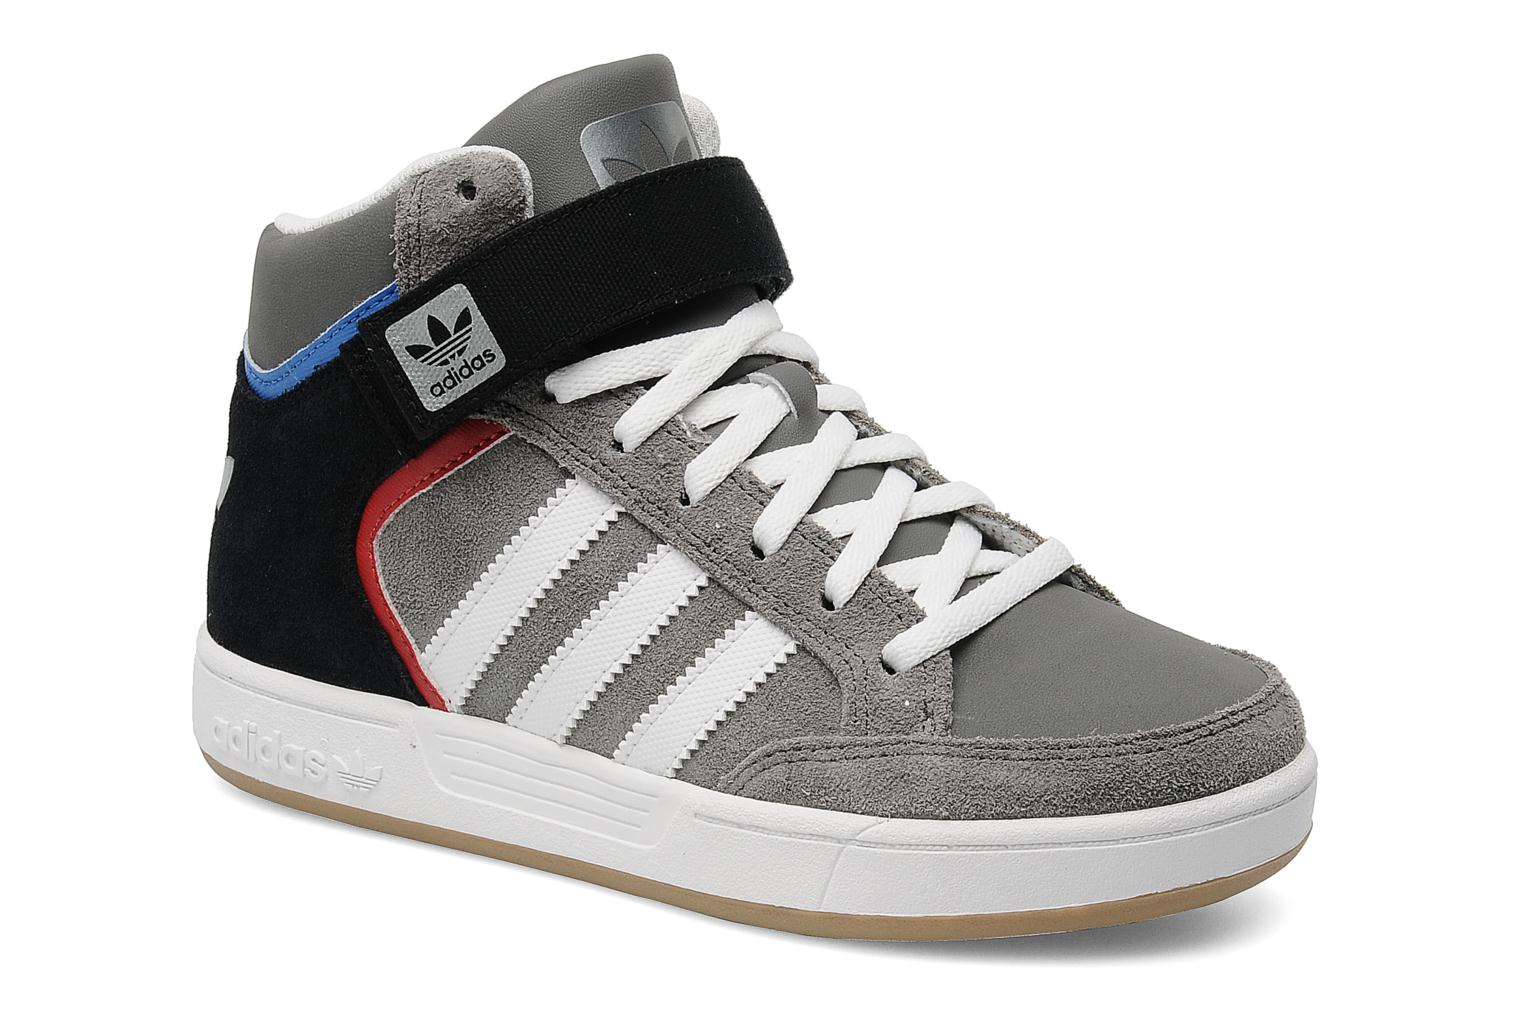 adidas originals varial mid j trainers in grey at sarenza. Black Bedroom Furniture Sets. Home Design Ideas